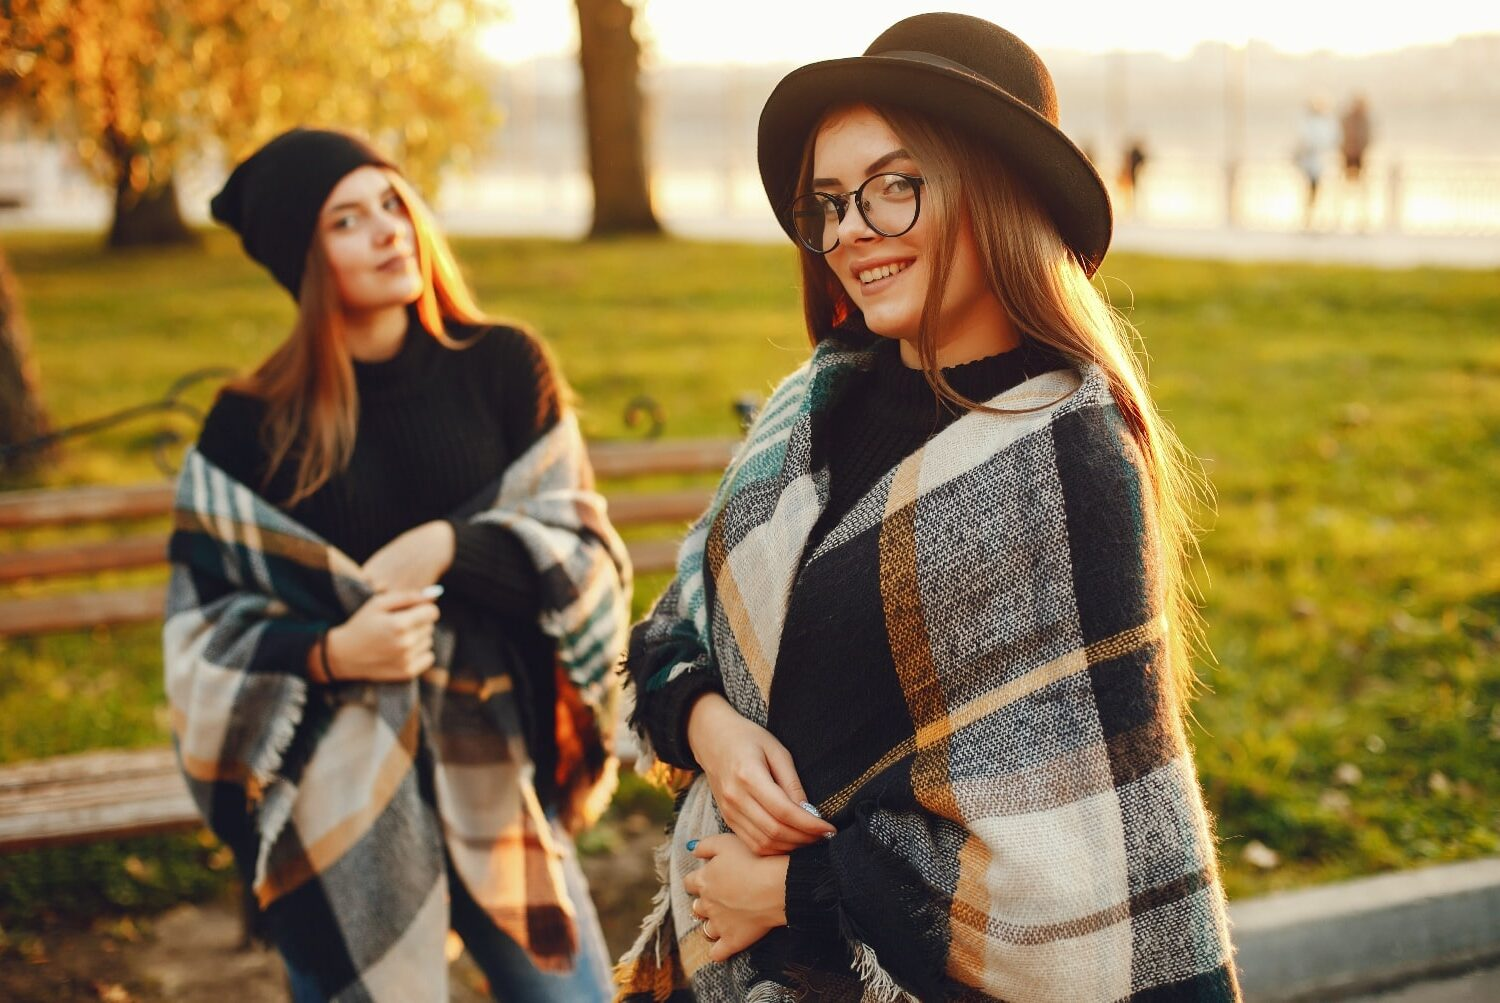 girls-in-the-city-QFBZJDN-min